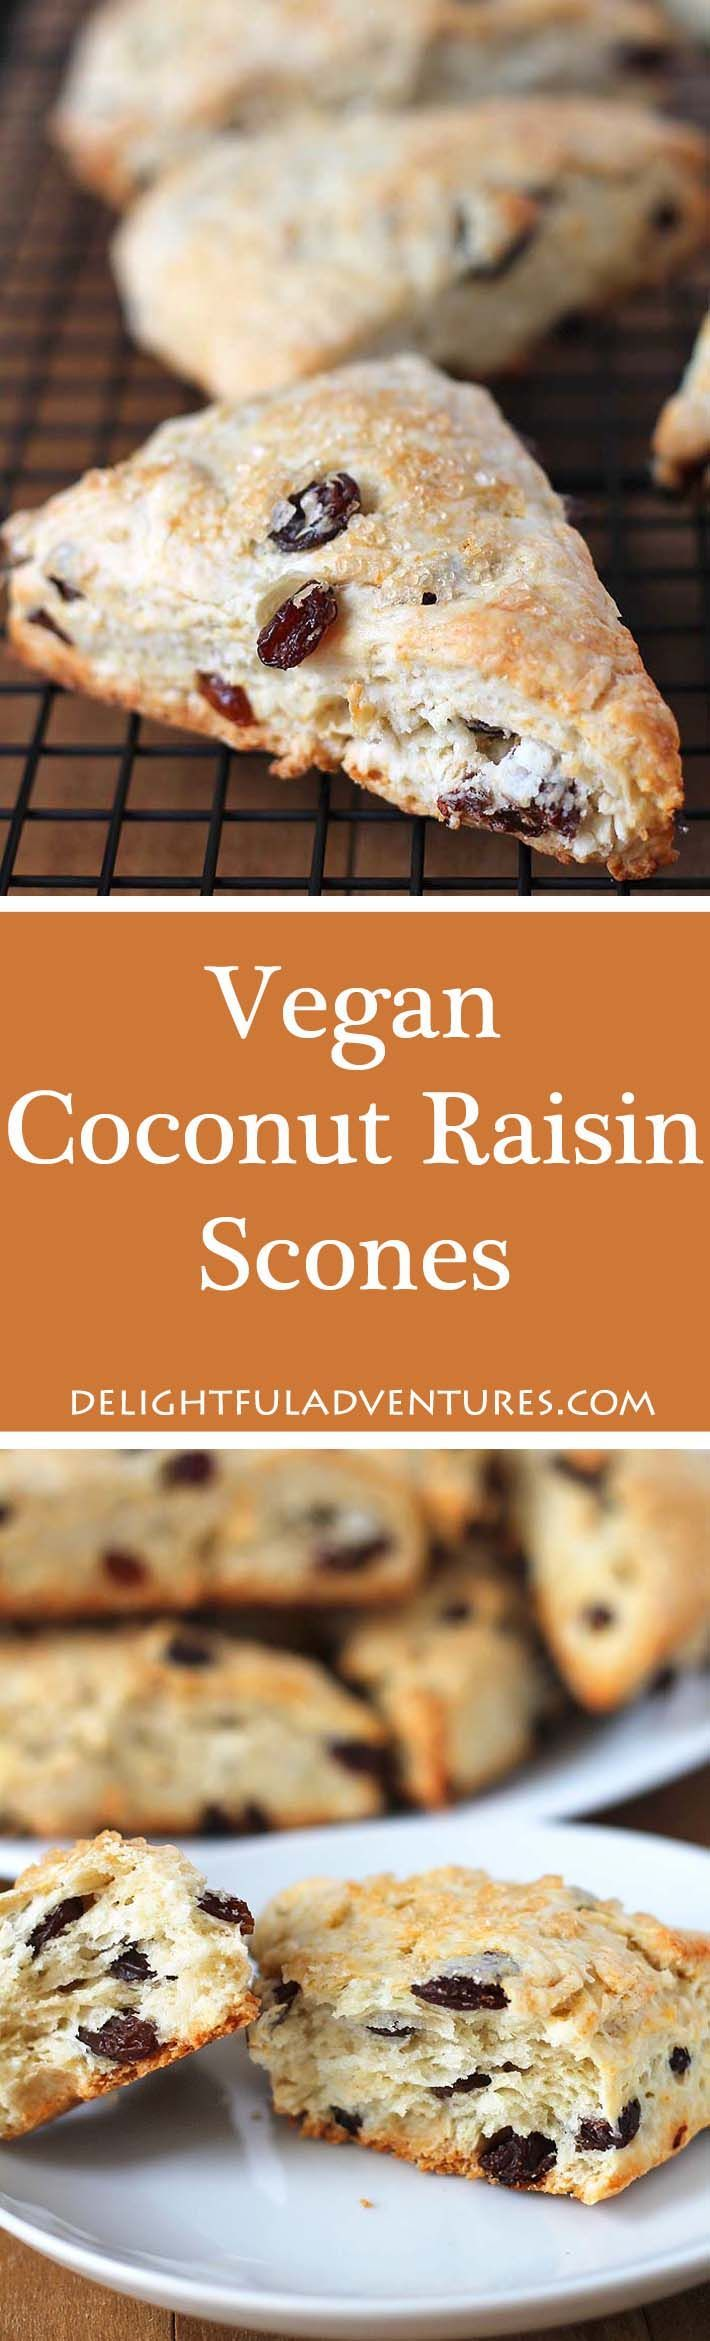 These easy Coconut Raisin Vegan Scones have the perfect texture and are wonderful to enjoy with tea. They're also ideal for serving at breakfast or brunch. via @delighfuladv